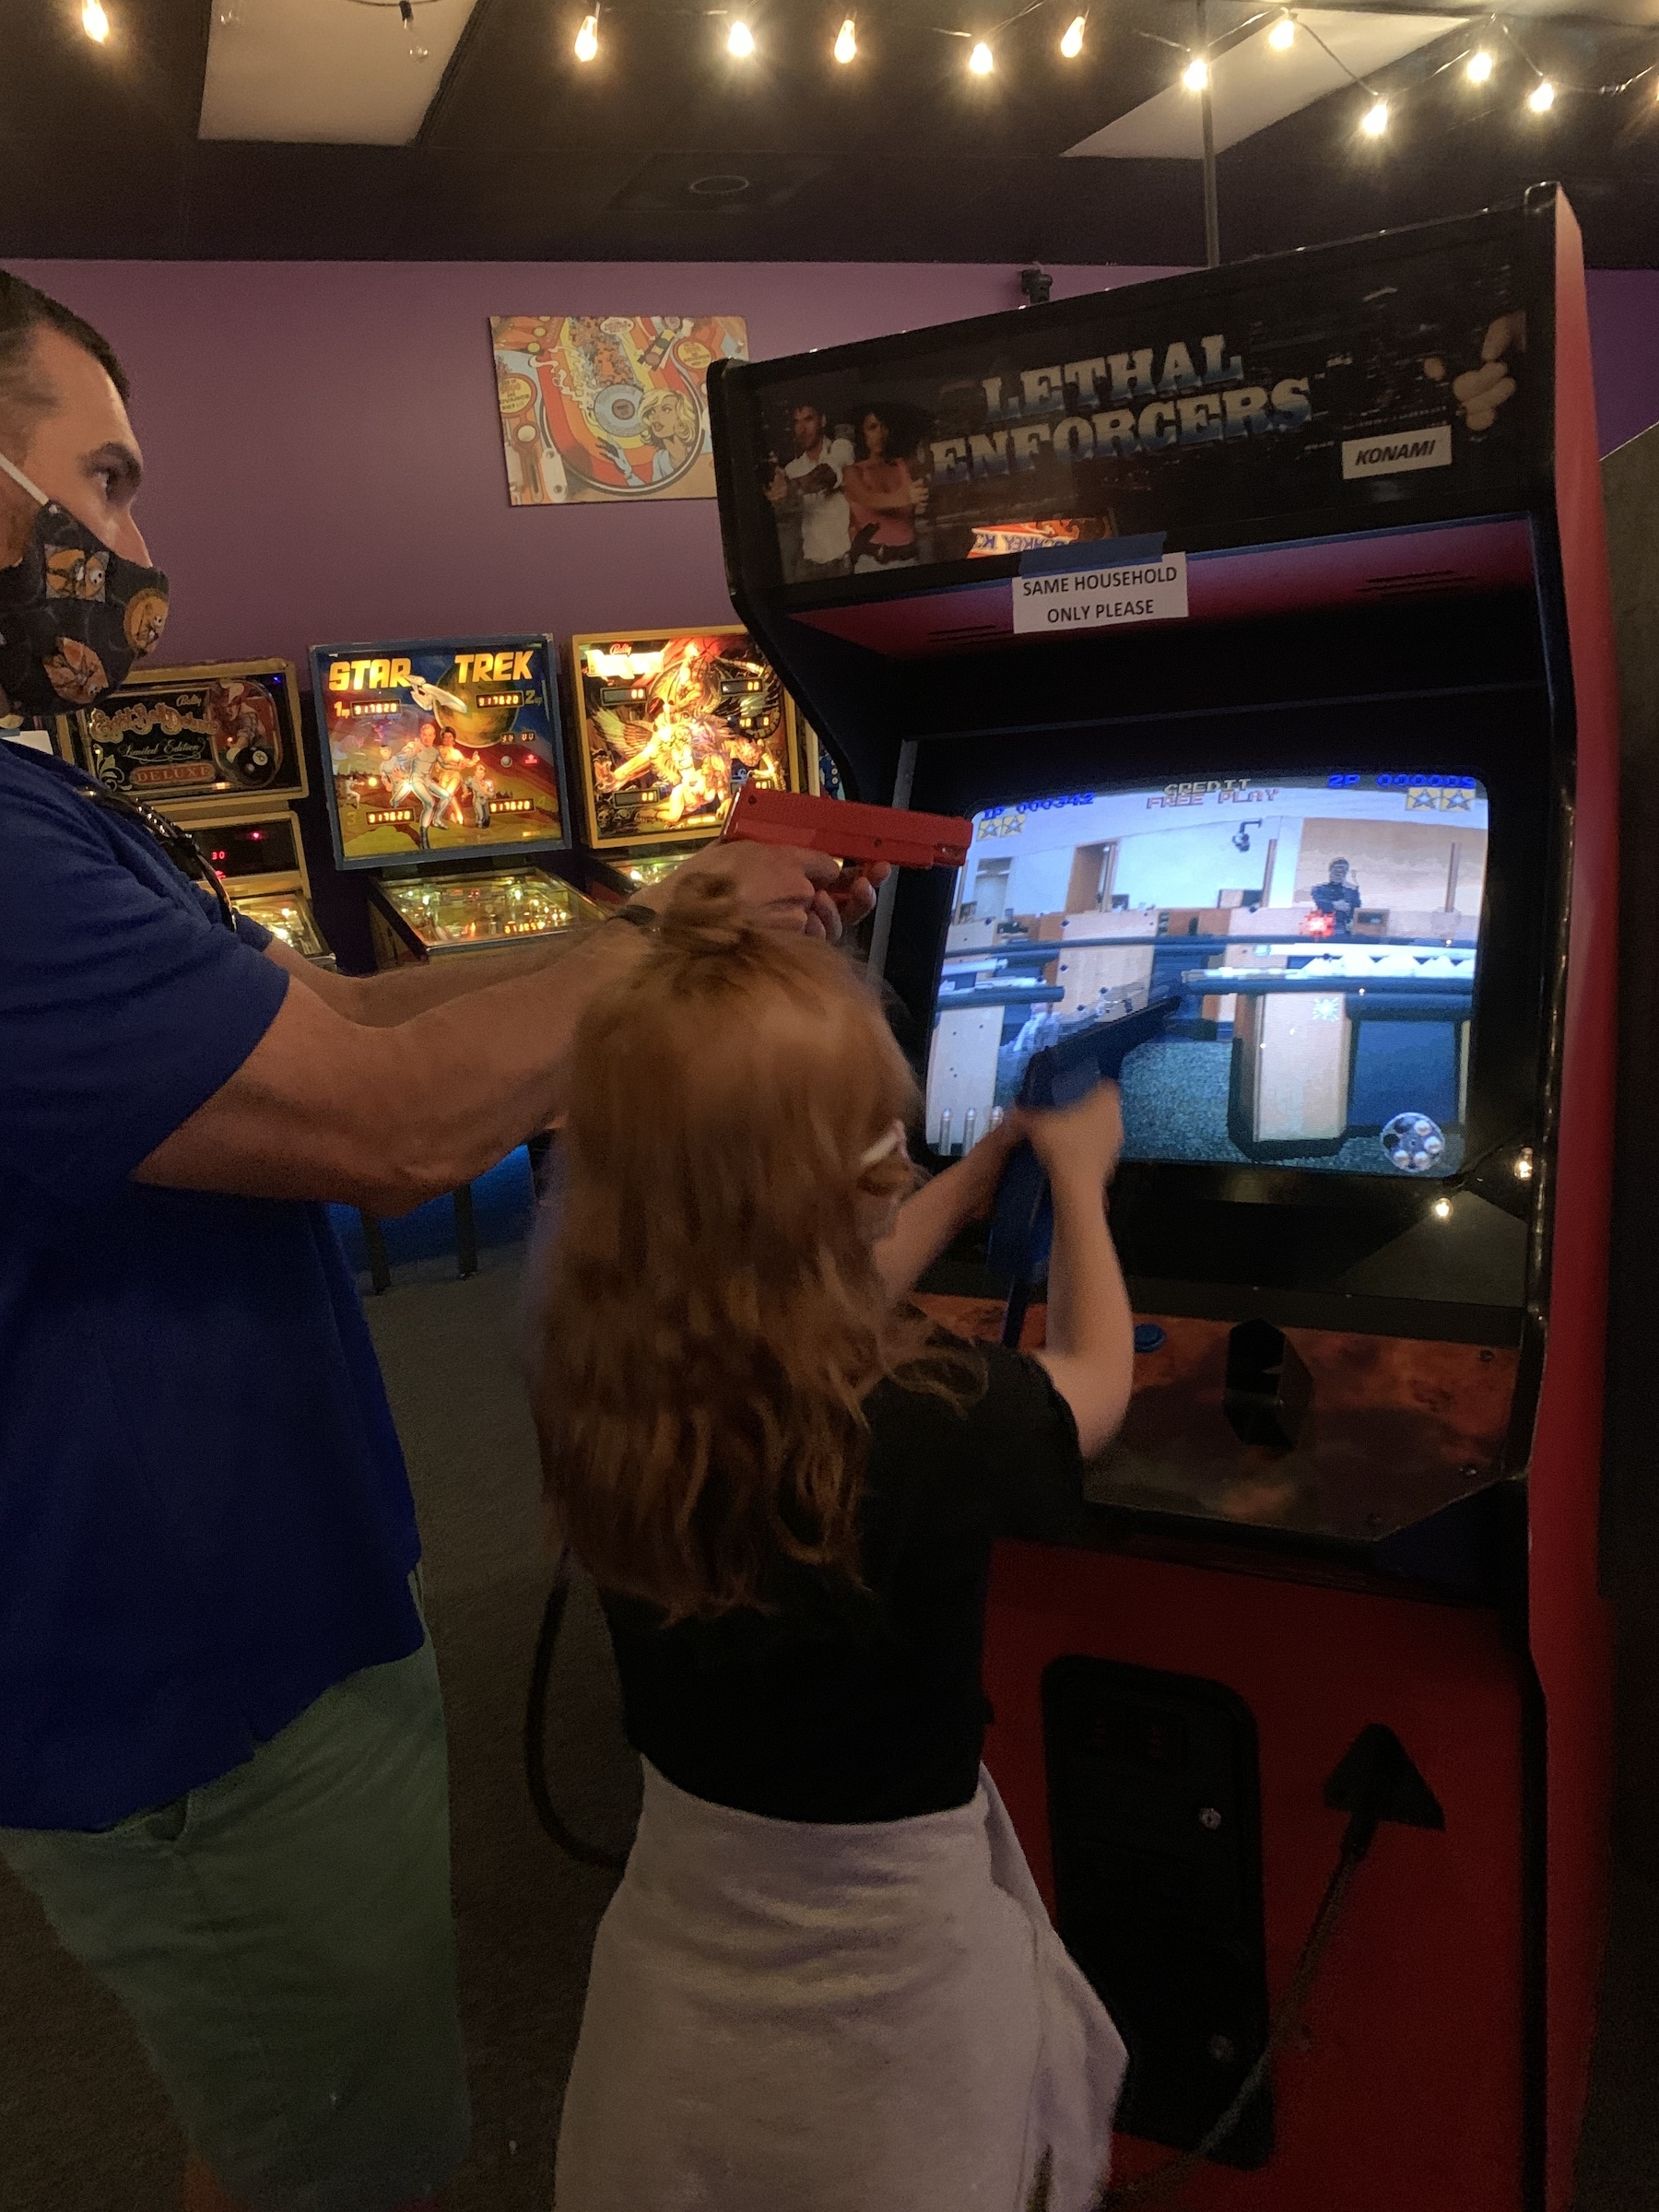 Pinball and video games private event